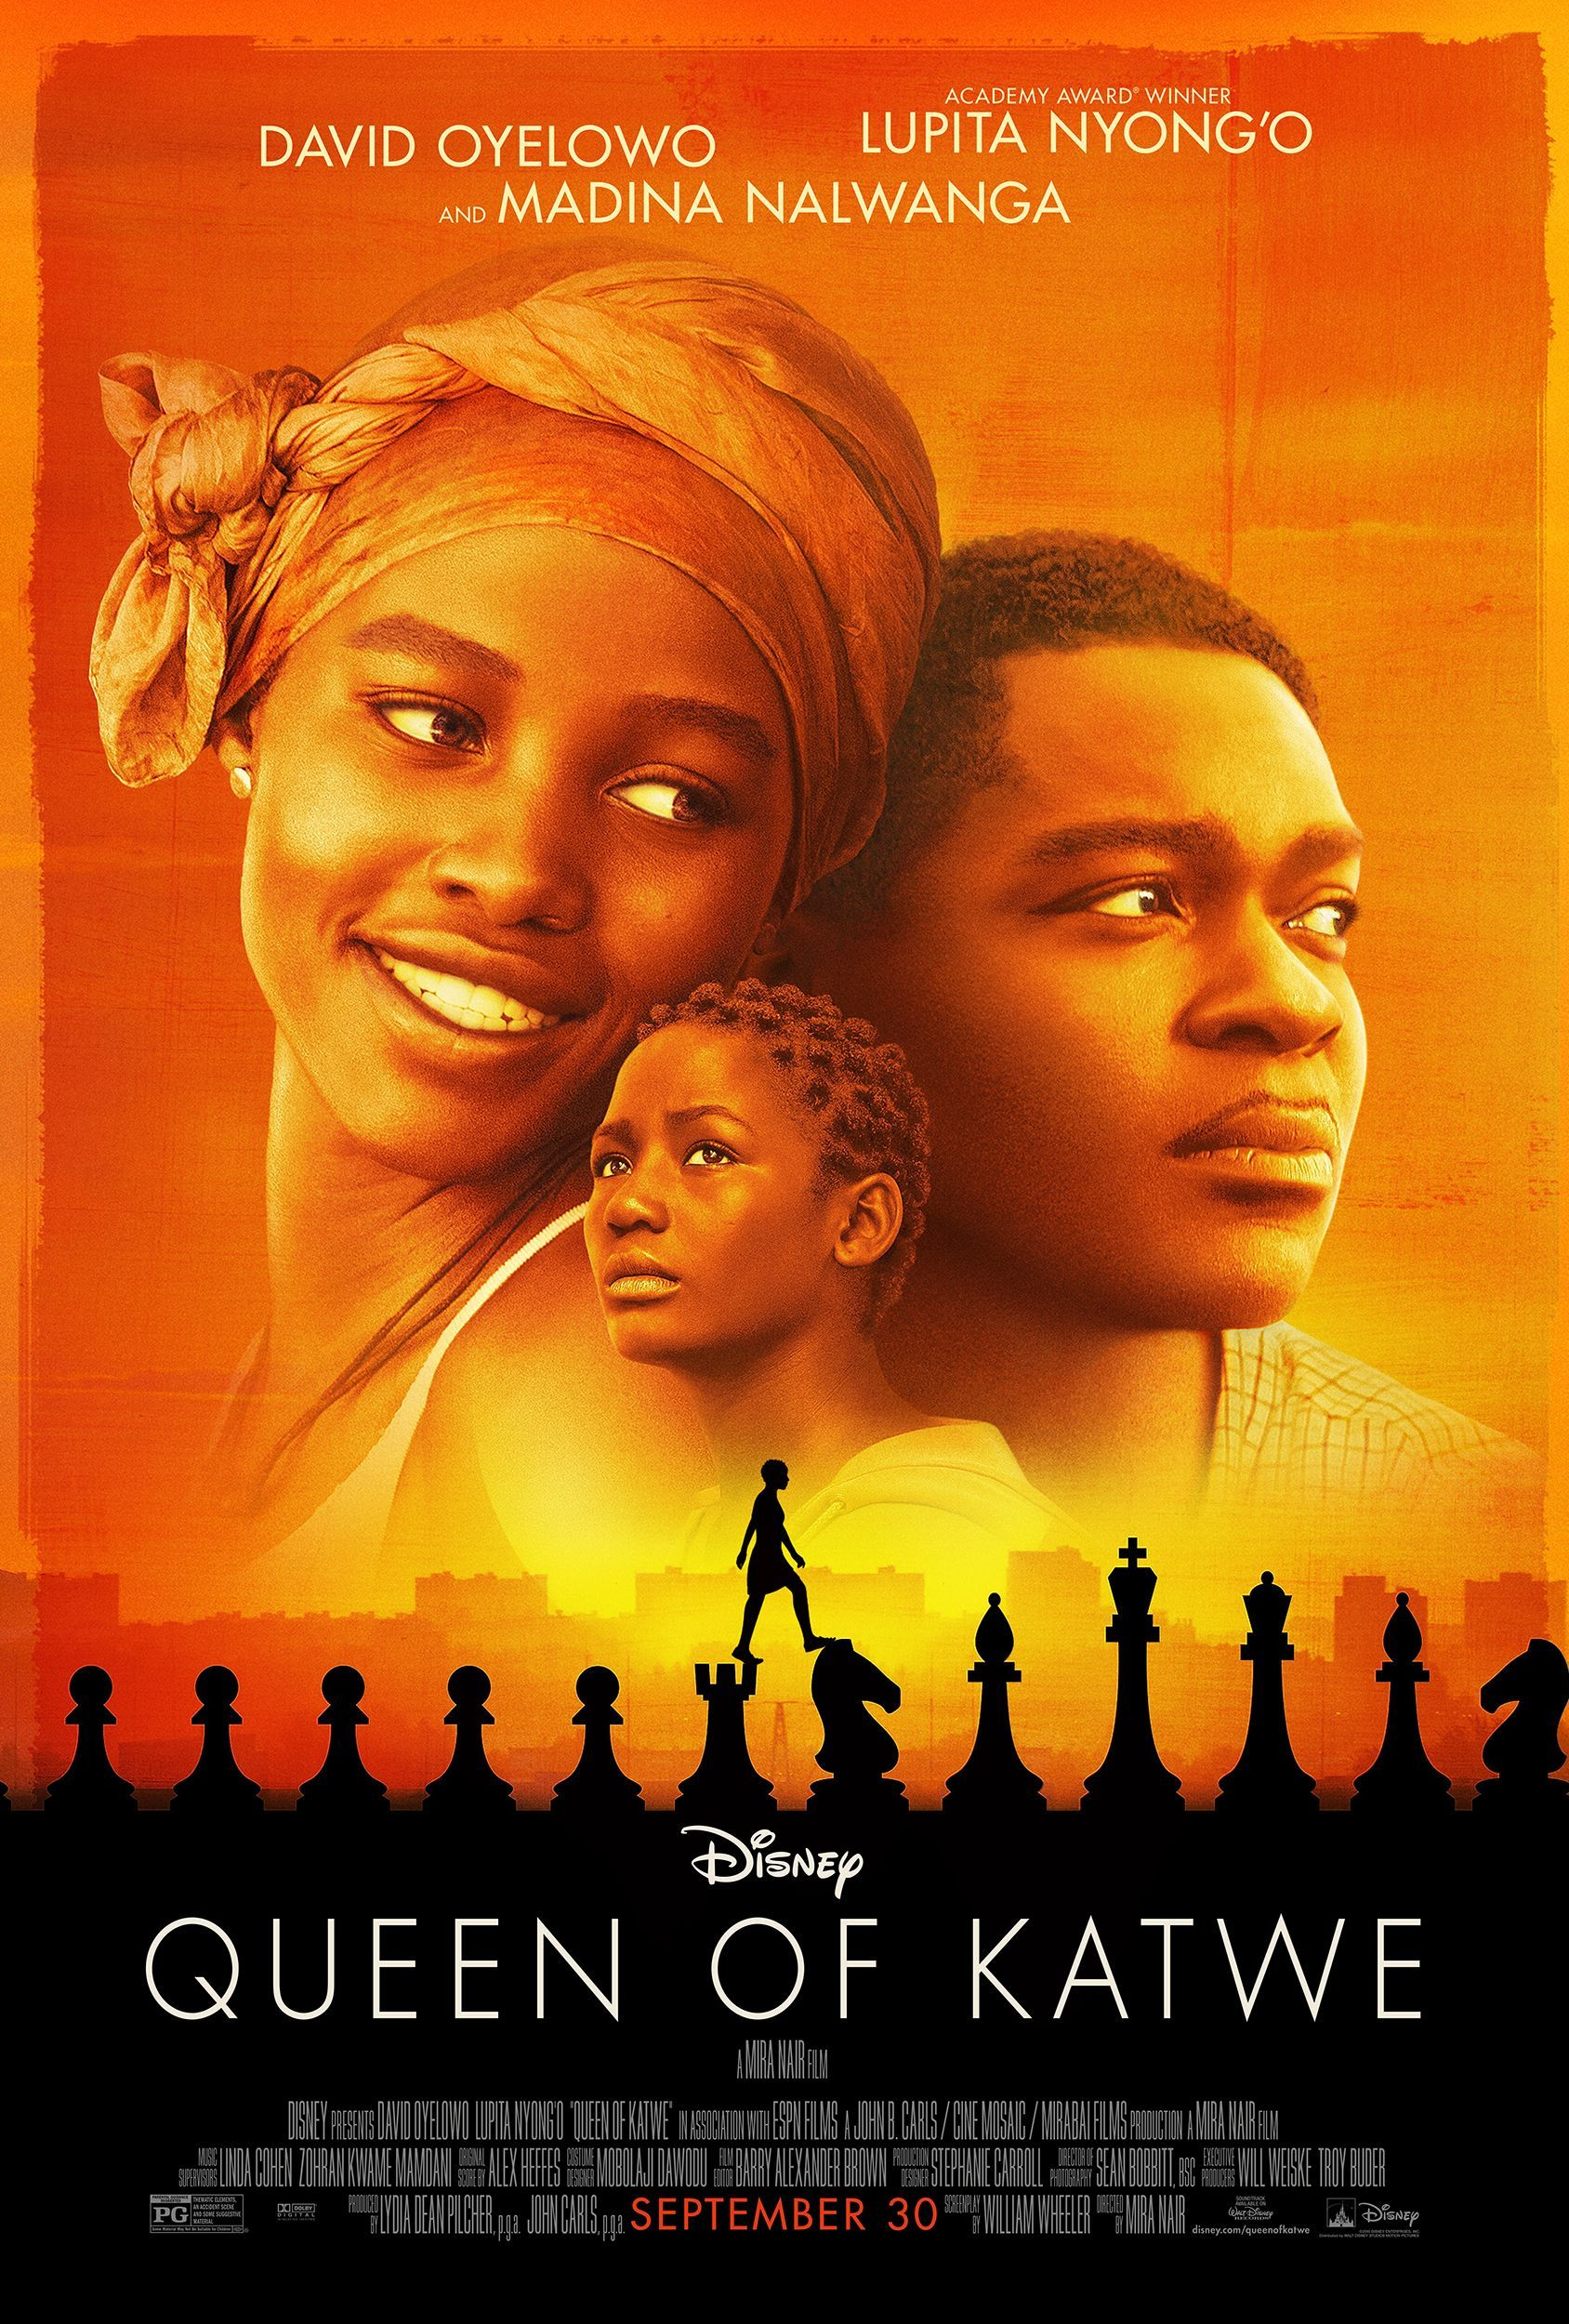 Queen Of Katwe 2016 Free Movies Online Full Movies Online Free Movies Online